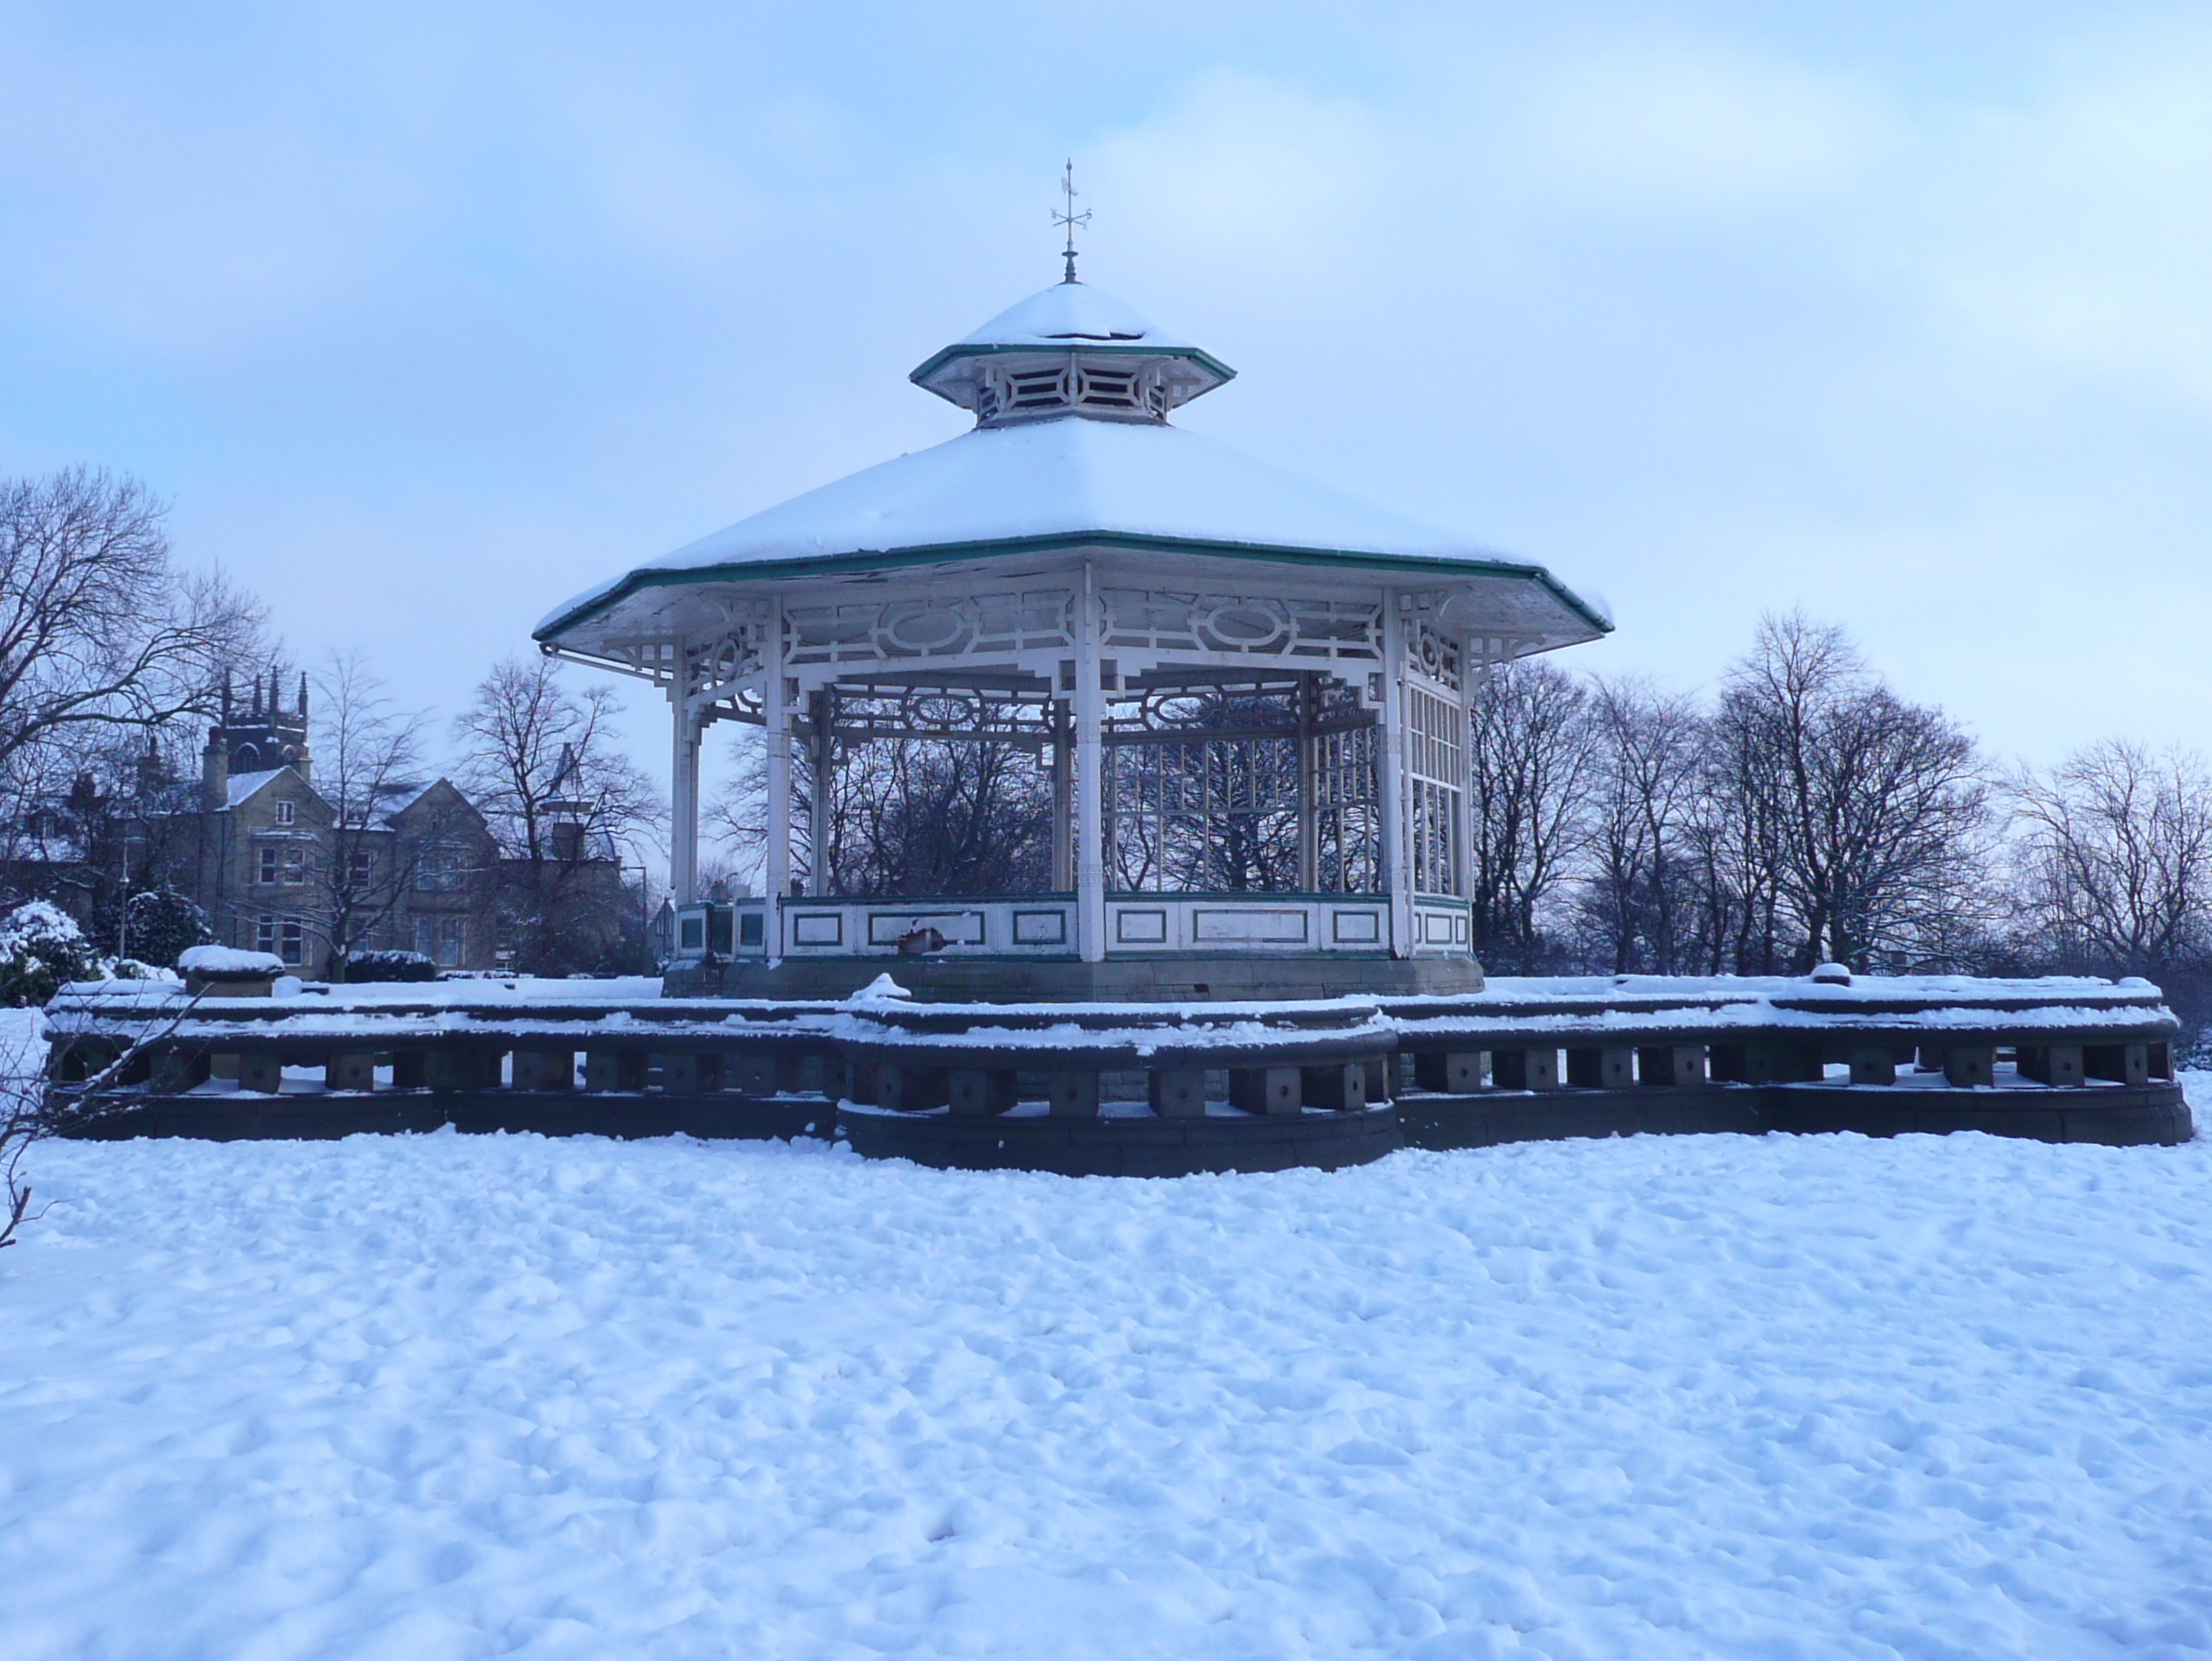 Bandstand in the snow, February 2009